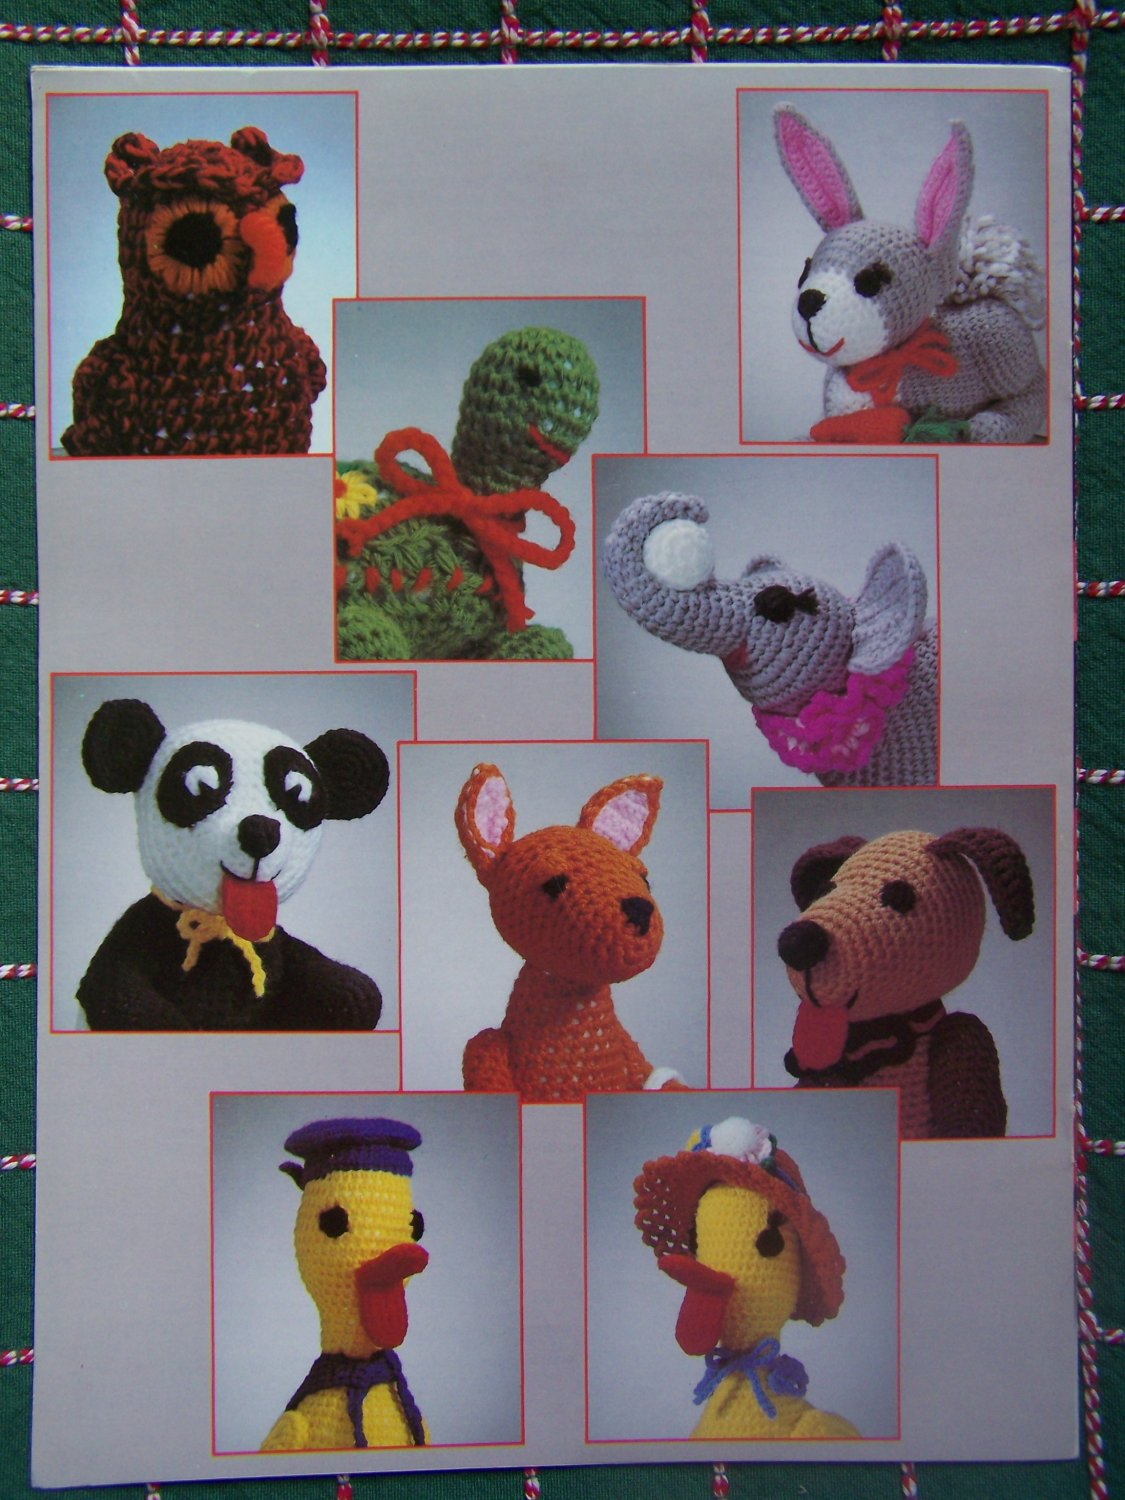 9 Vintage Crochet Patterns Stuffed Animals Owl Turtle Kangaroo & Baby Ducks